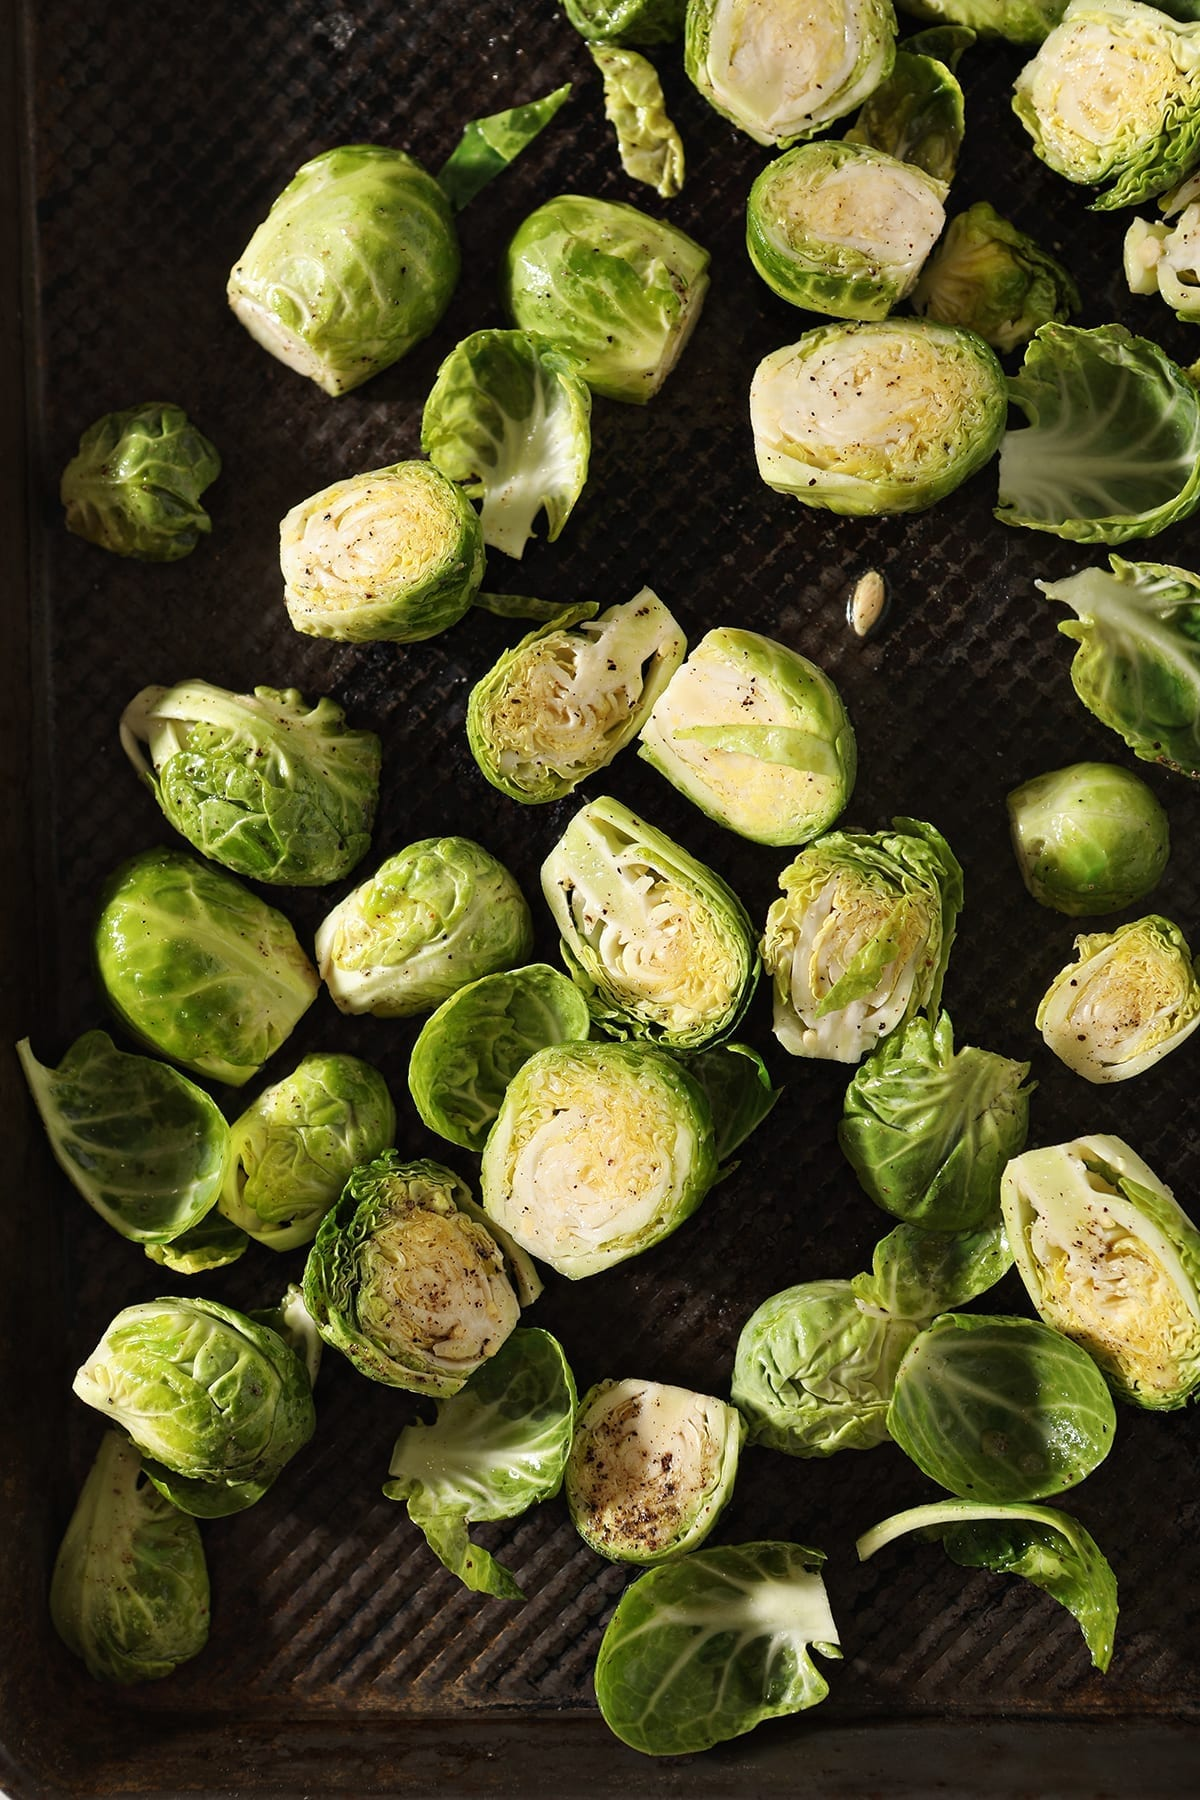 Brussels sprouts on a baking sheet before baking